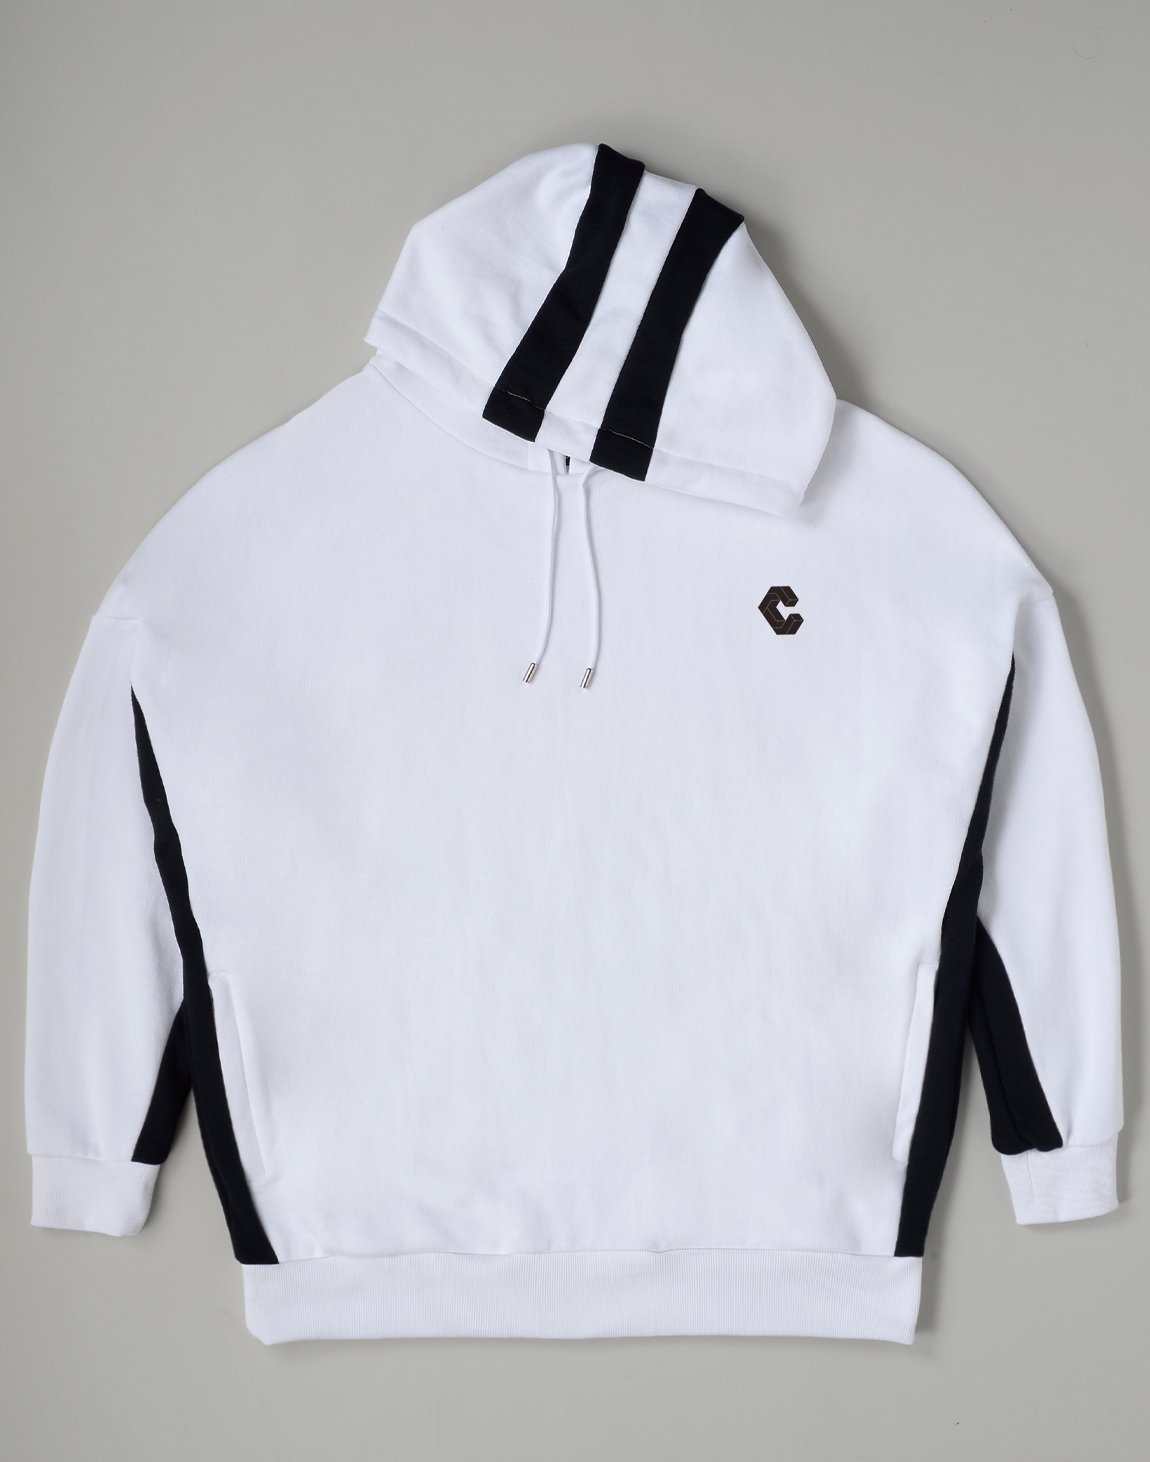 <img class='new_mark_img1' src='https://img.shop-pro.jp/img/new/icons55.gif' style='border:none;display:inline;margin:0px;padding:0px;width:auto;' />CRONOS 2STRIPE HOODIE【WHITE】